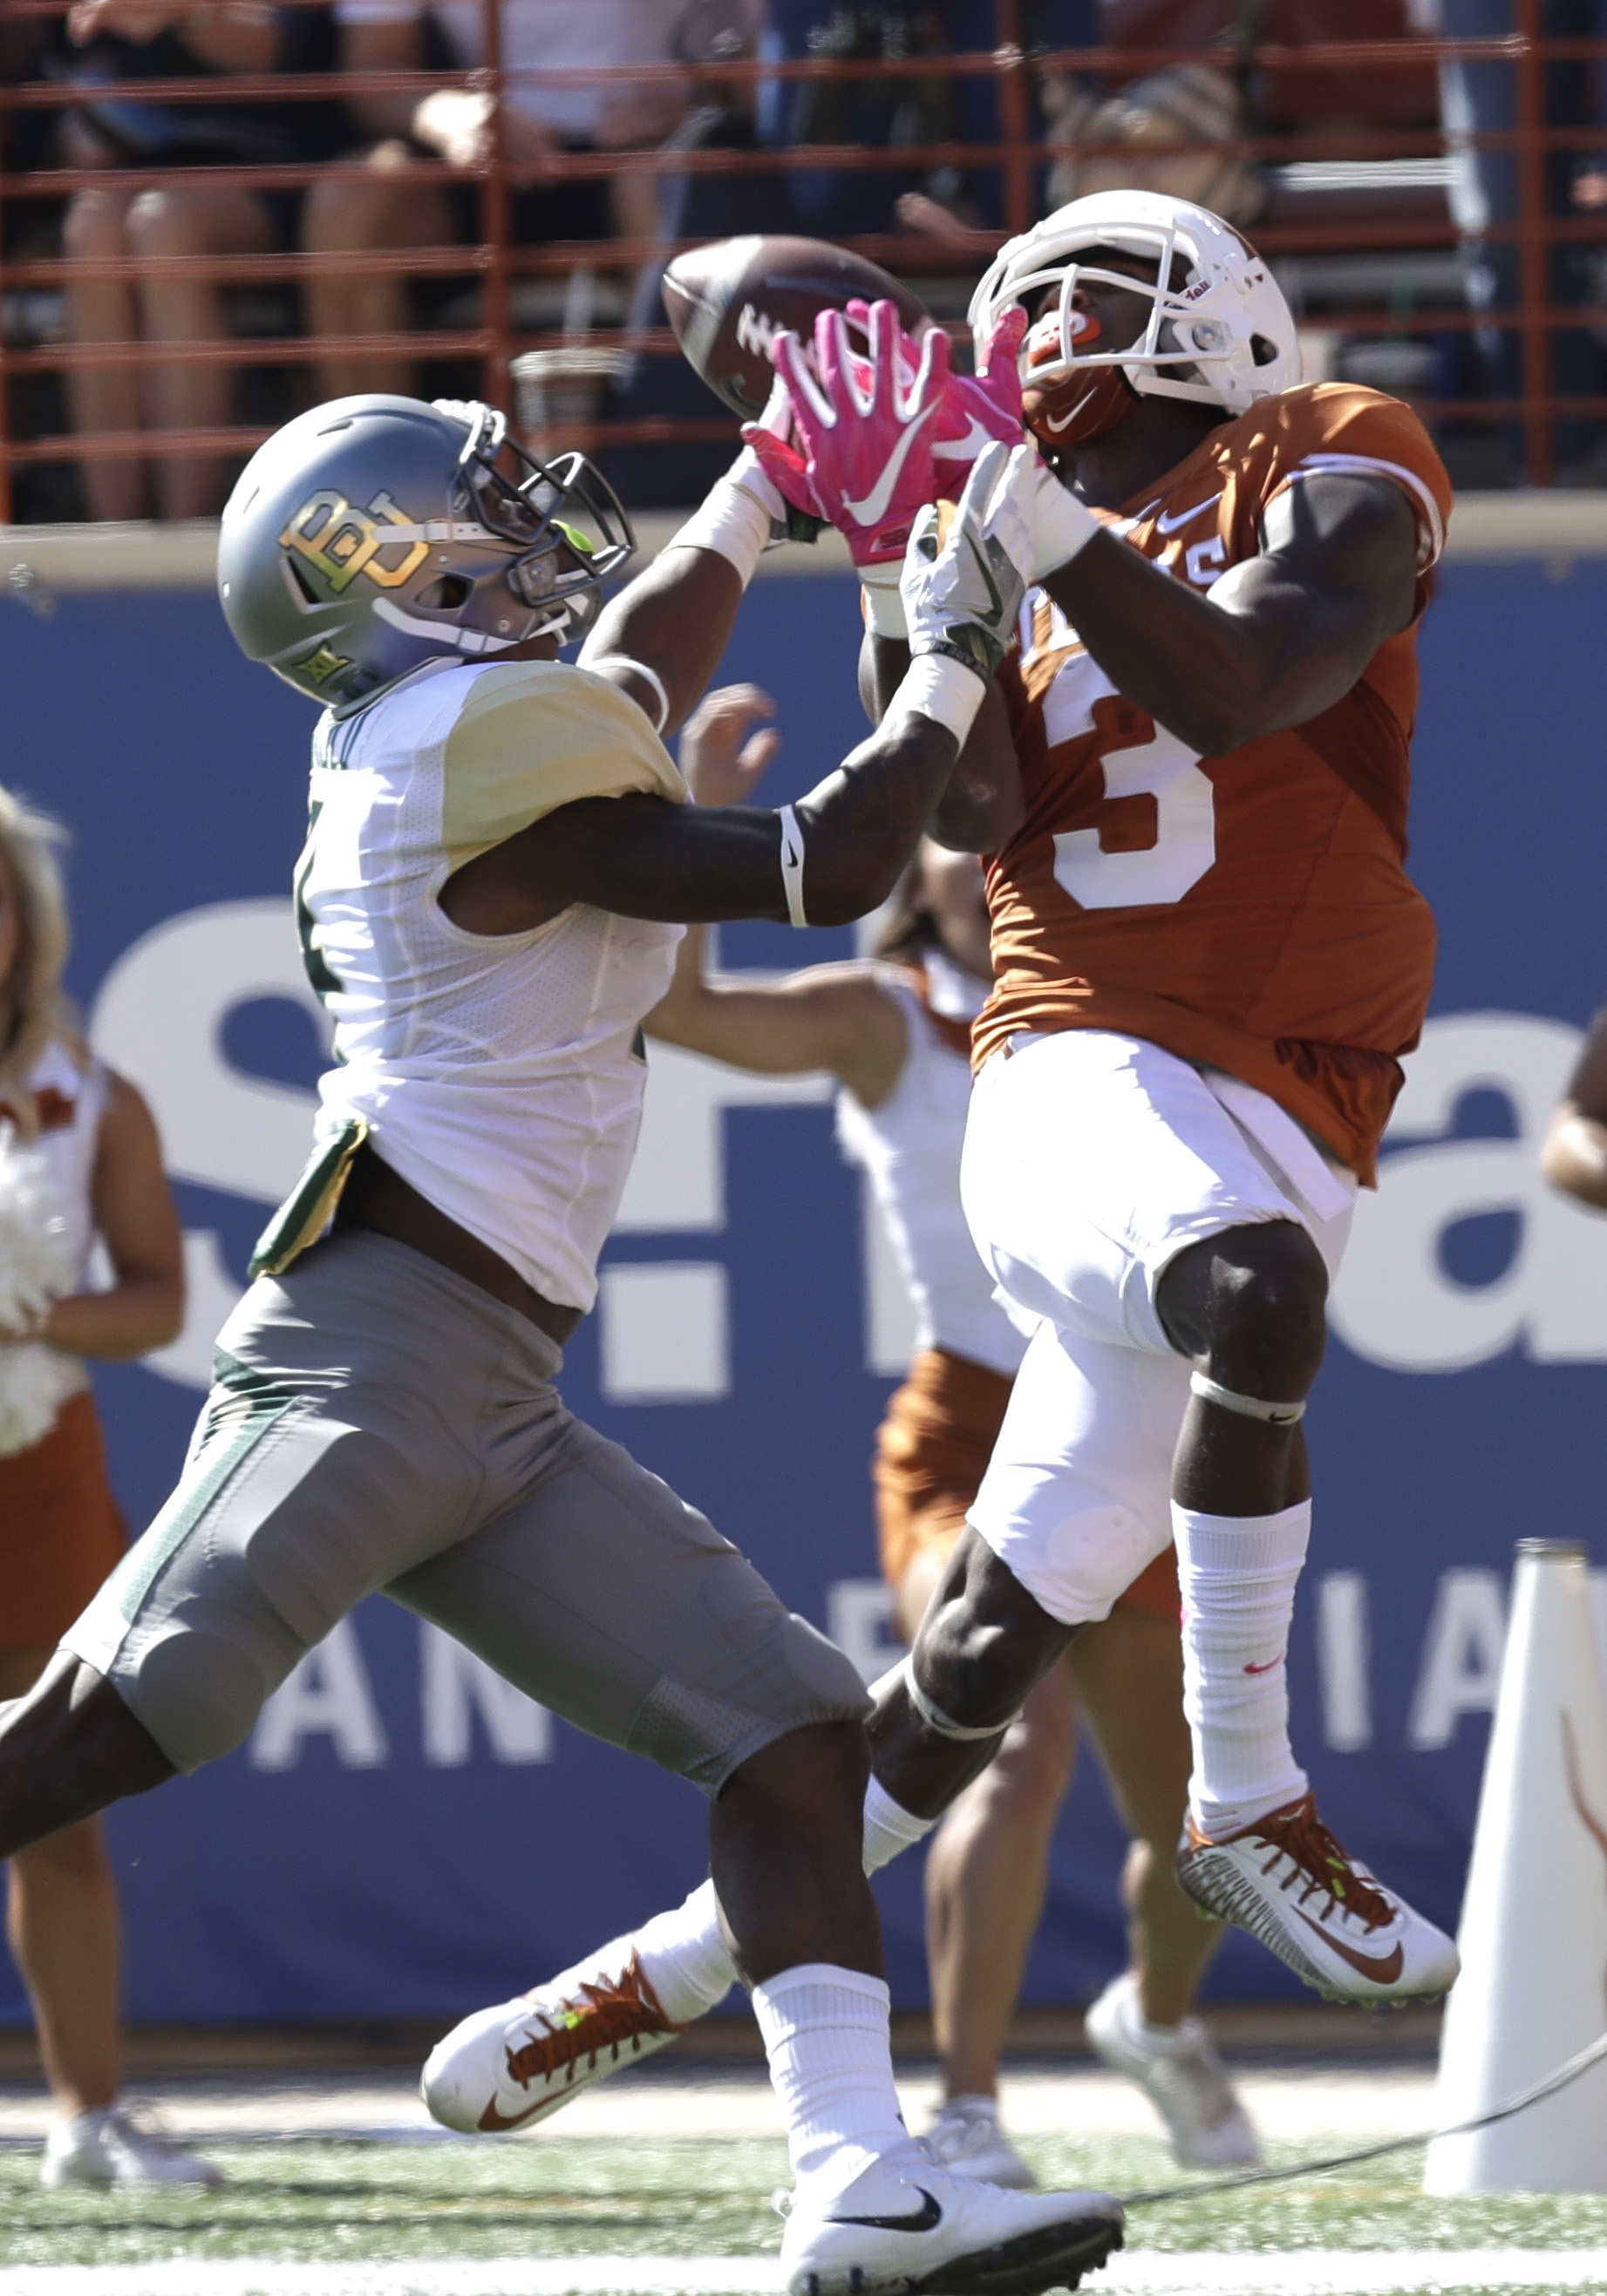 Texas wide receiver Armanti Foreman (3) makes a 40-yard catch over Baylor cornerback Grayland Arnold (4) during the first half on a NCAA college football game, Saturday, Oct. 29, 2016, in Austin, Texas. (AP Photo/Eric Gay)